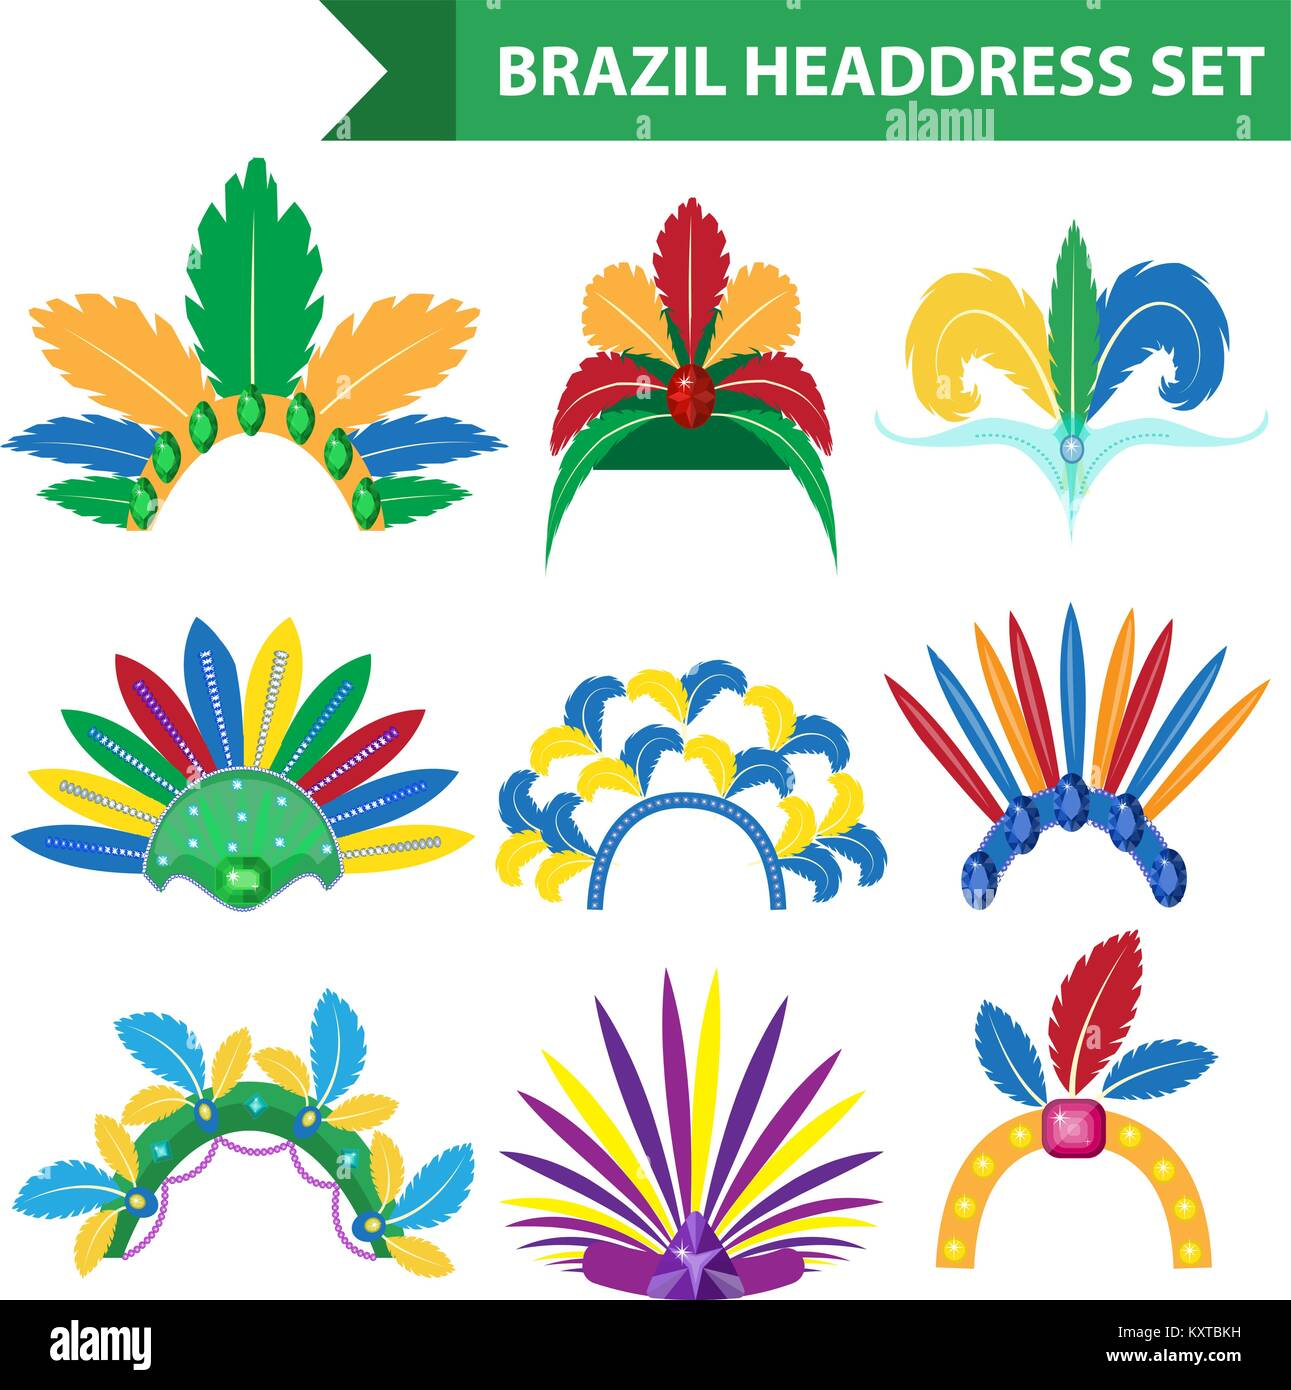 Brazil Feather Headband Headdress icons flat style. Headpiece Carnival, Samba Festival headwear. Isolated on white - Stock Image